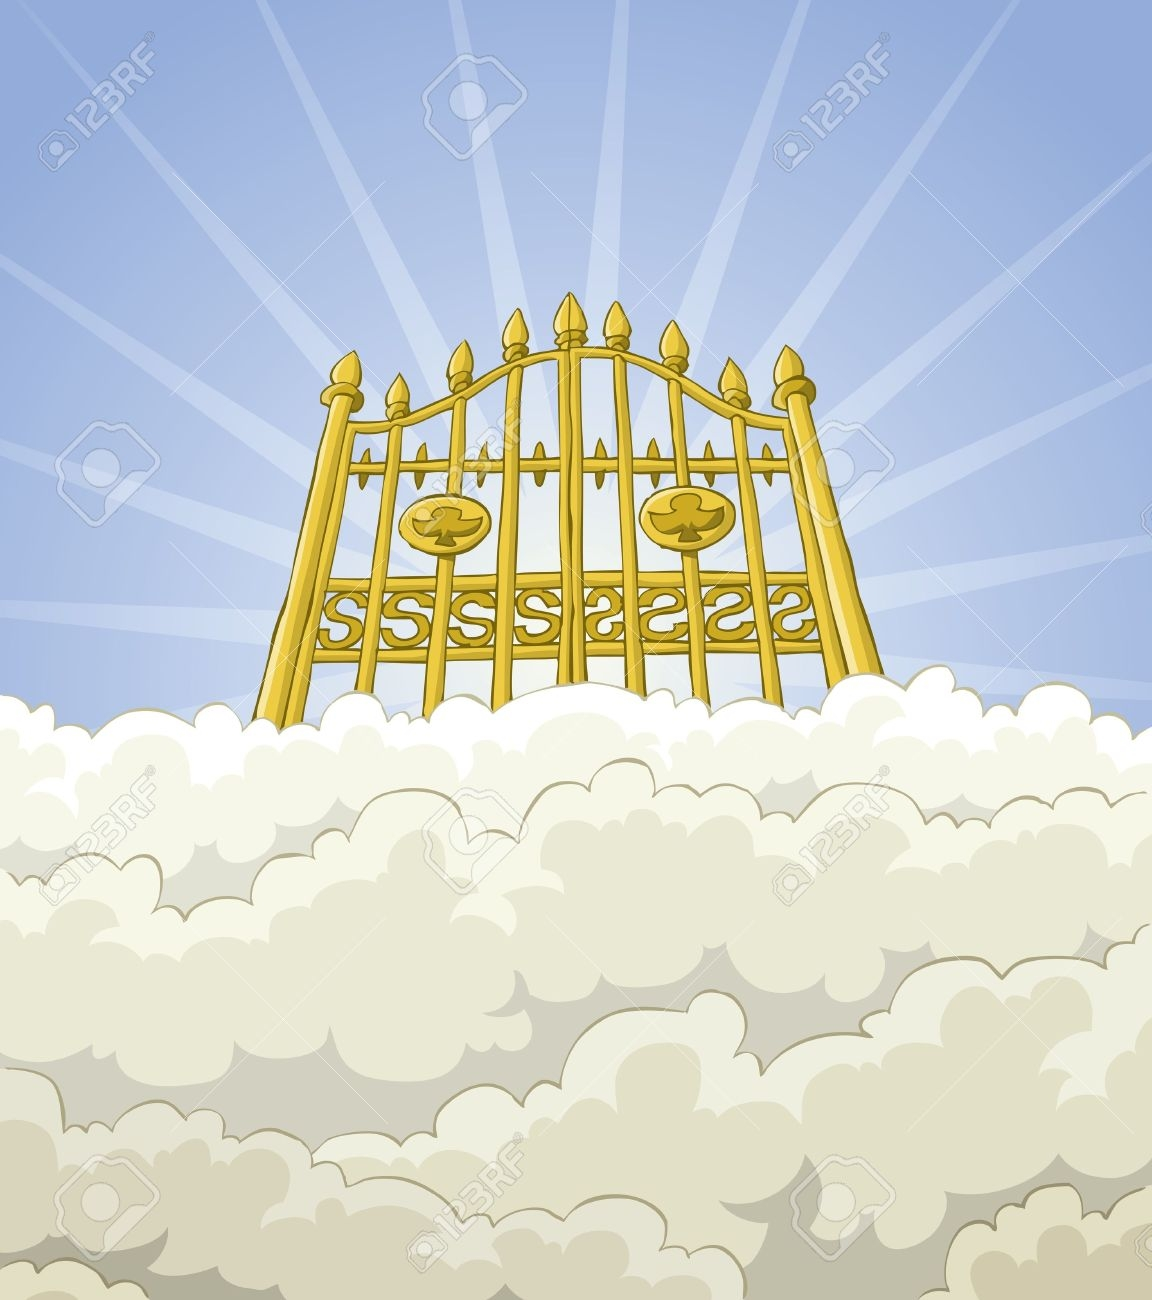 Heaven clipart. Fresh gallery digital collection